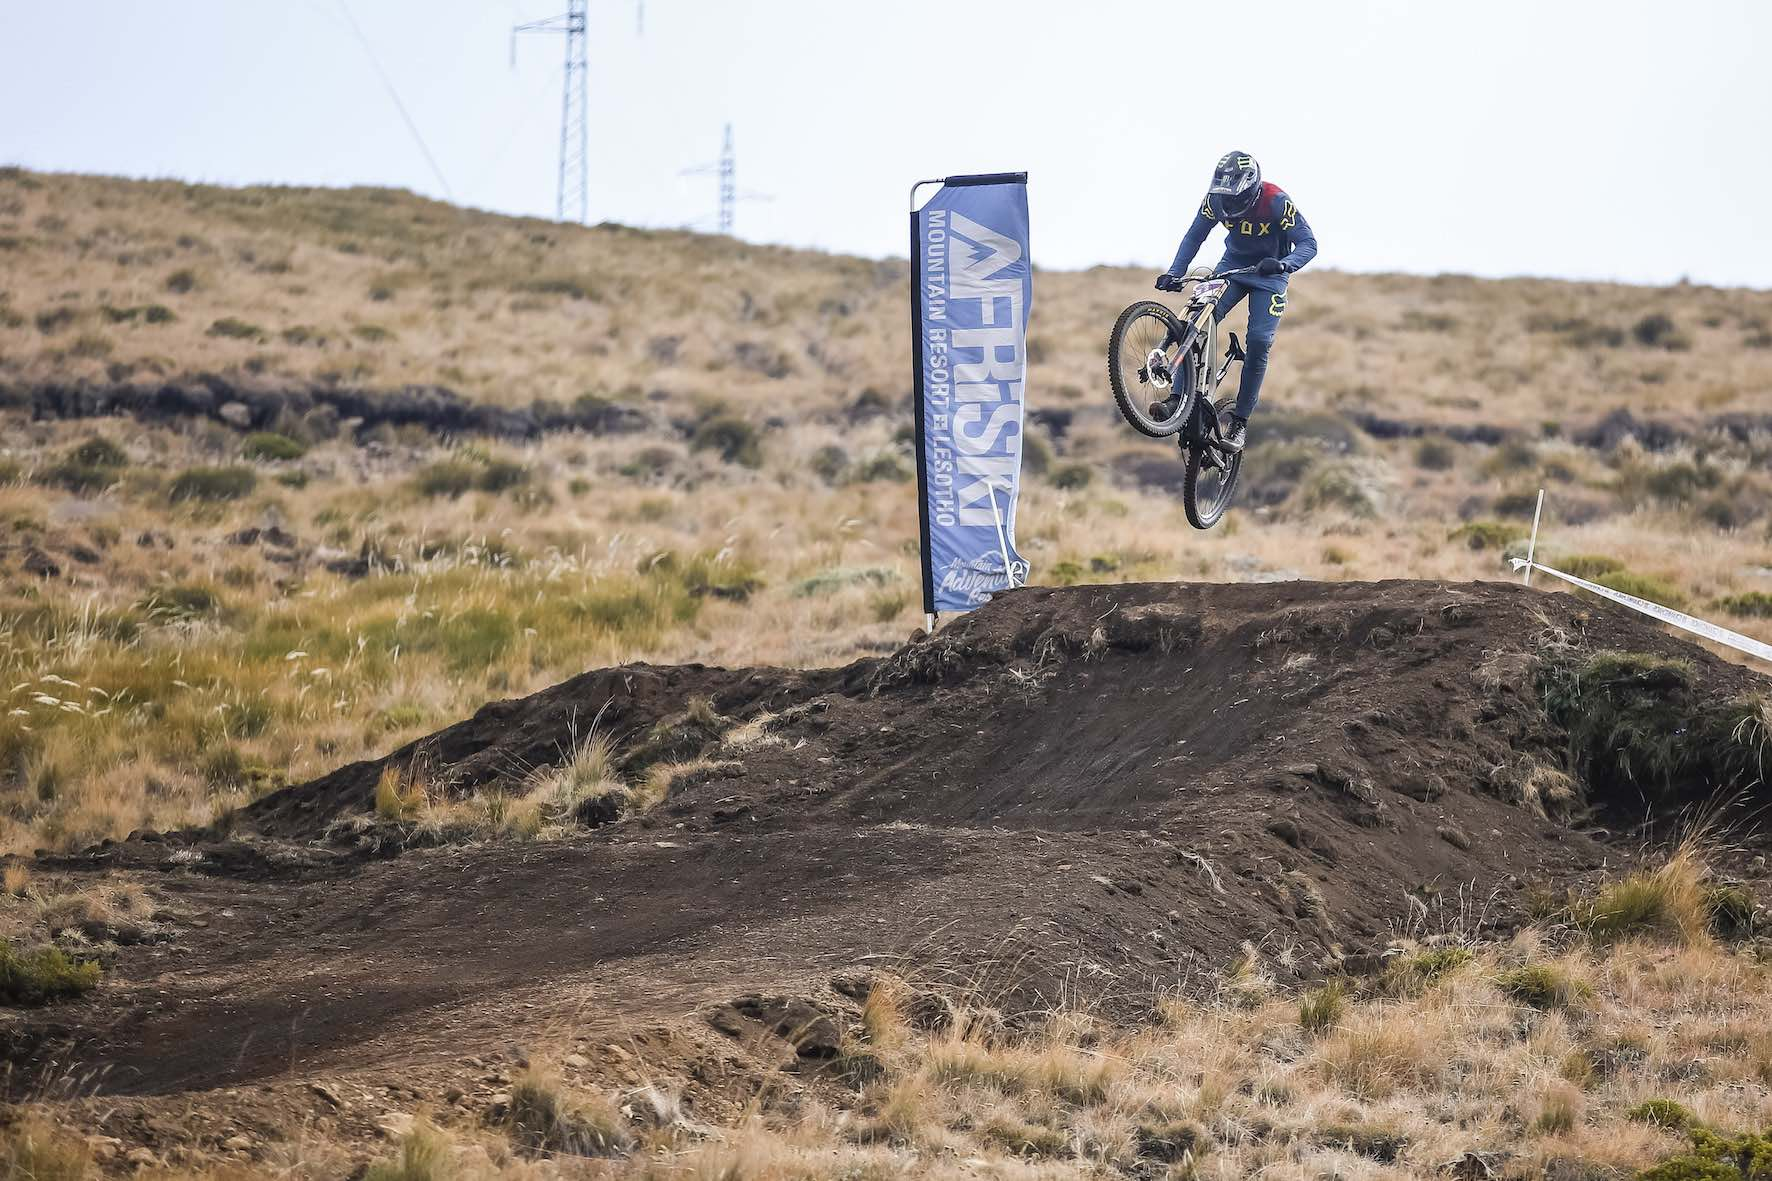 Interview with the 2019 South African Downhill Mountain bike champion, Theo Erlangsen